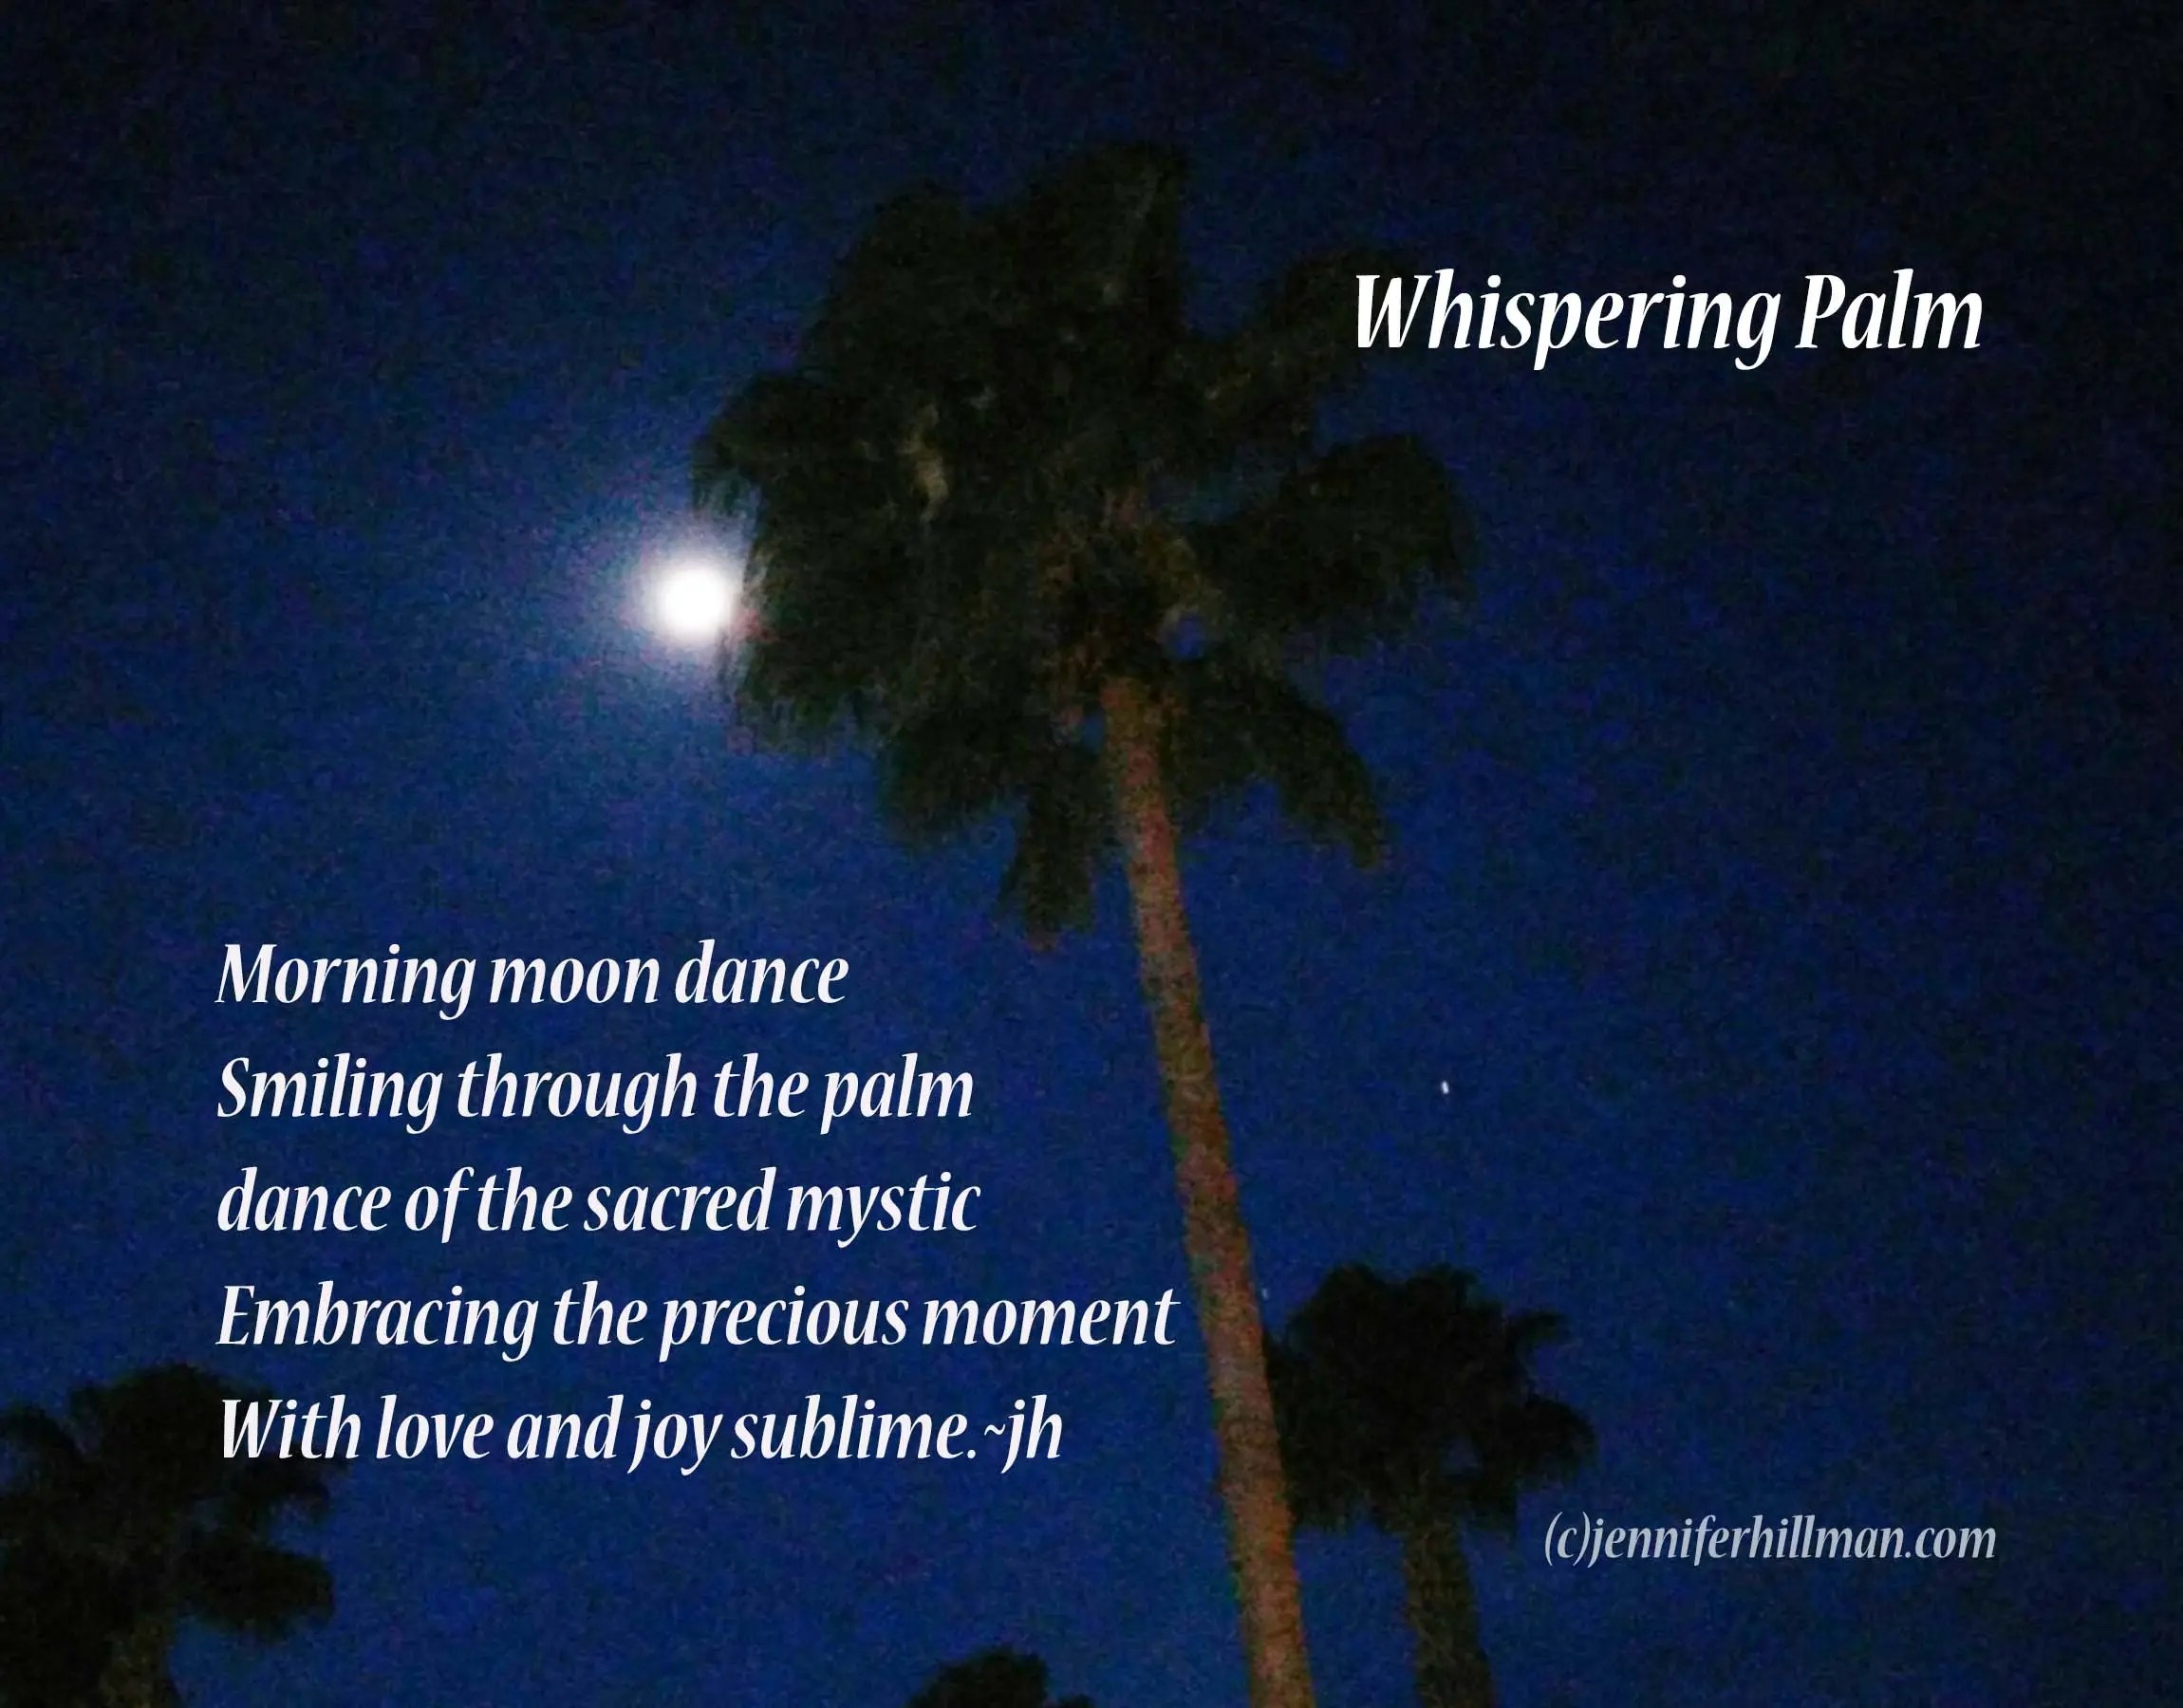 Whispering Palm